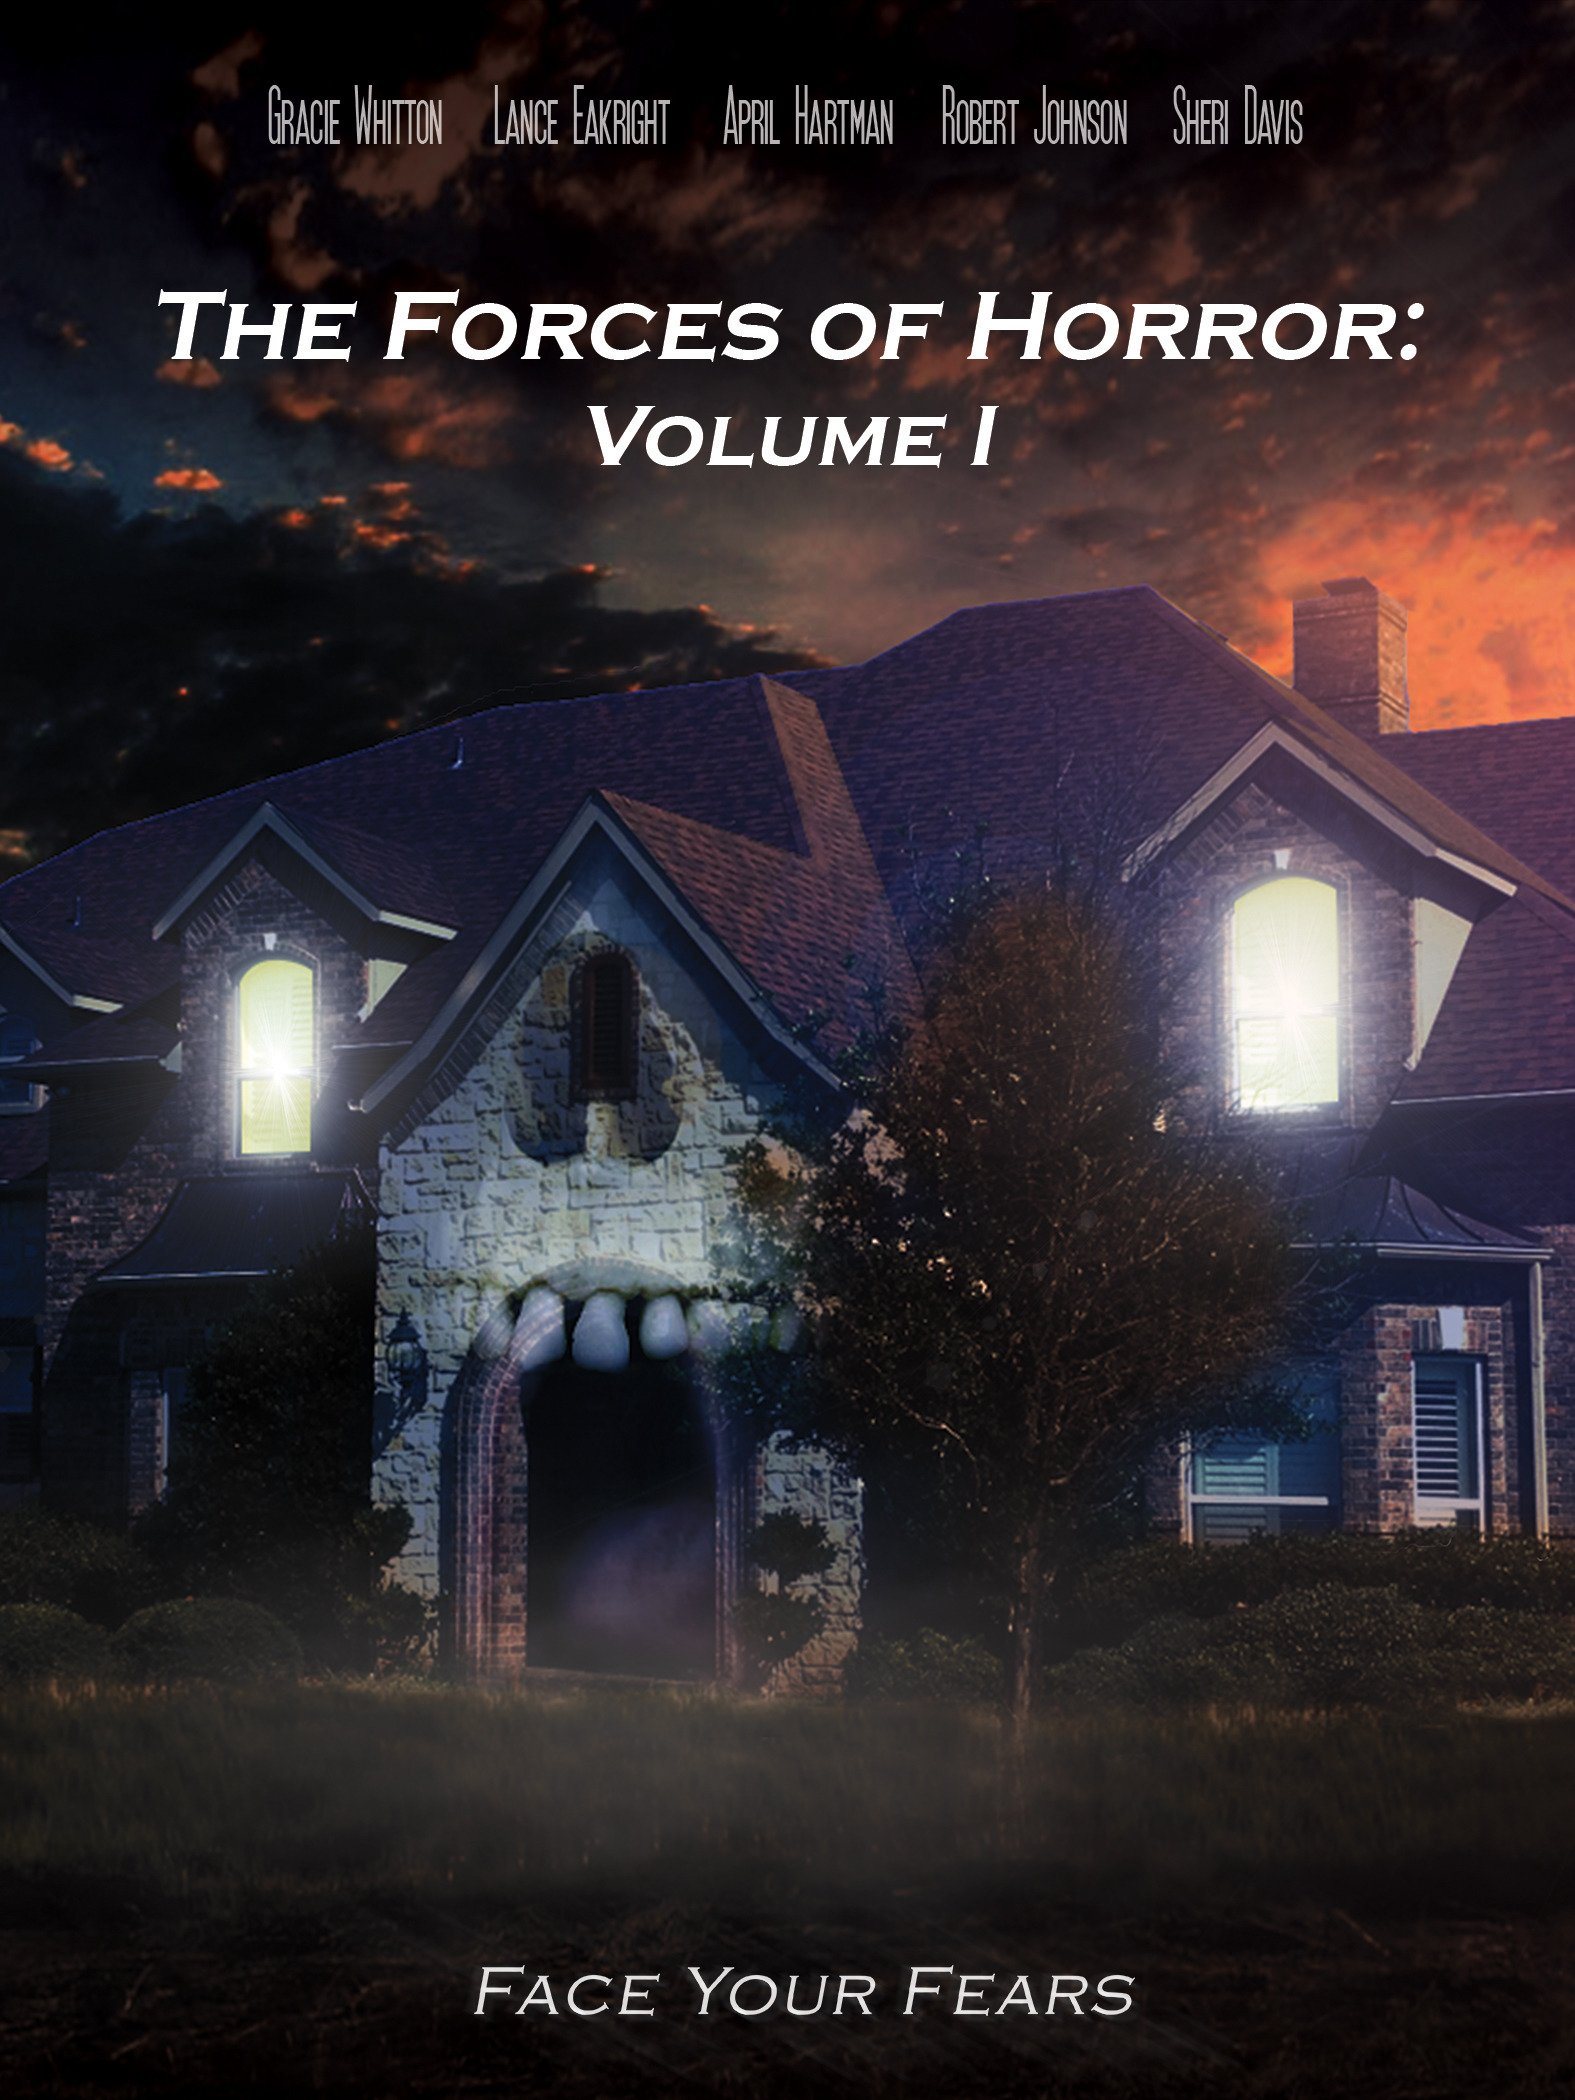 The Forces of Horror: Volume I